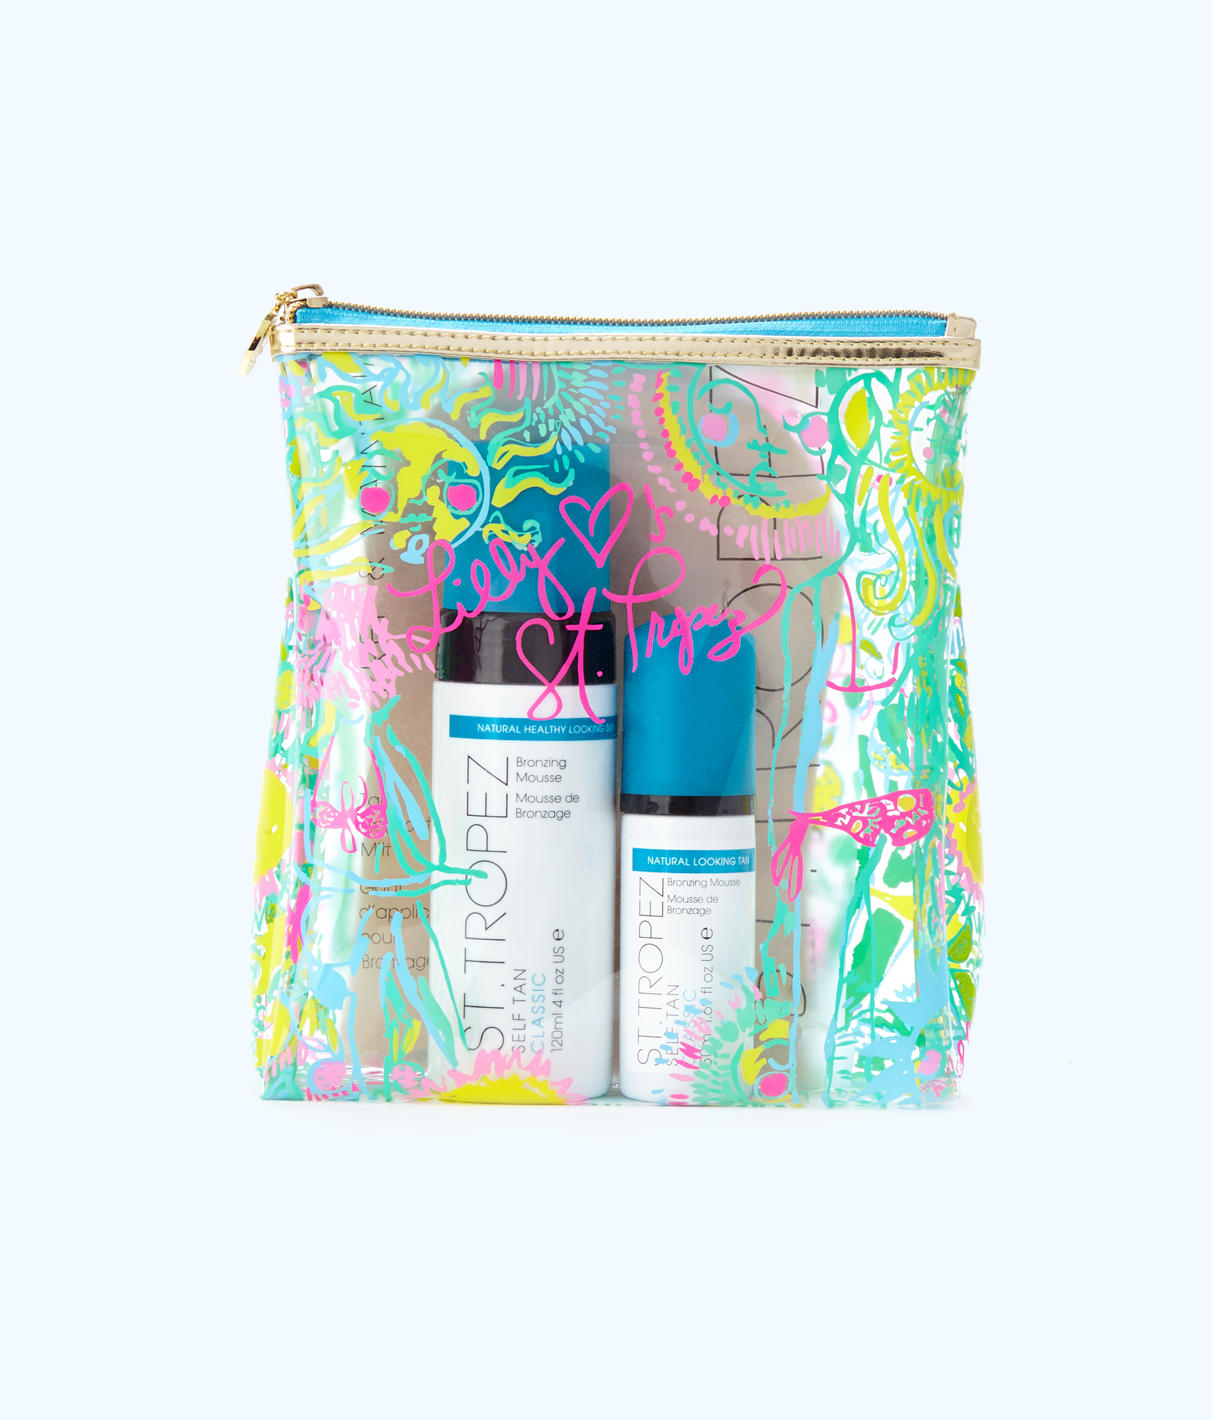 Lilly Pulitzer Lilly Pulitzer St. Tropez Lilly Pulitzer - The Ultimate Escape Kit